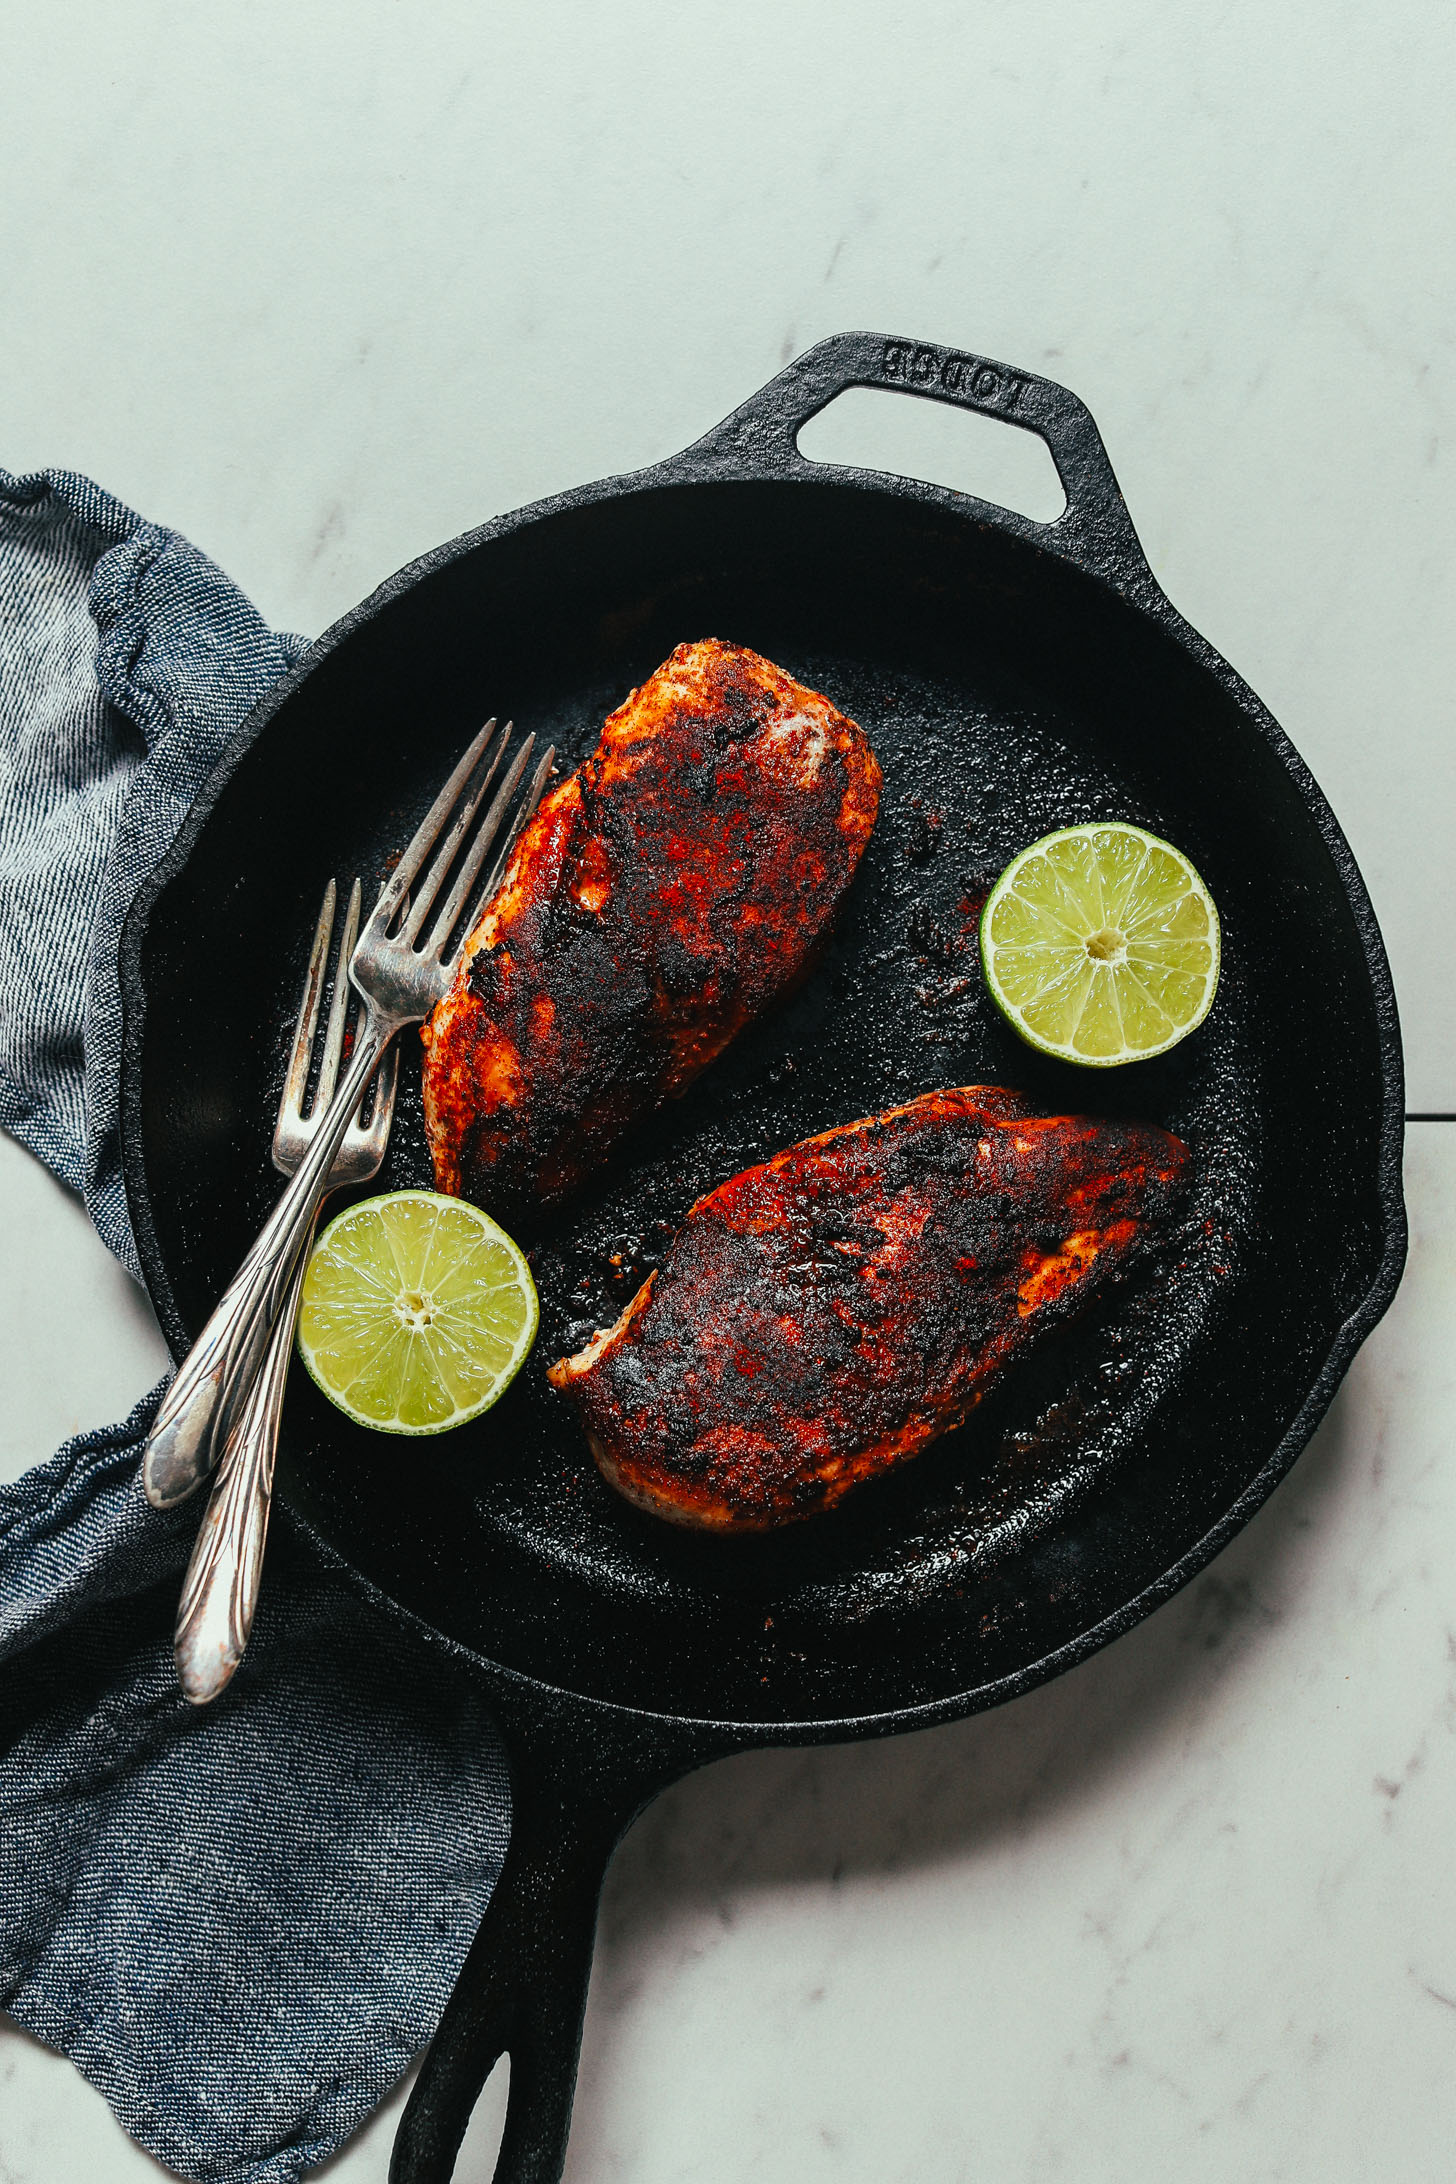 Skillet of cooked Mexican-seasoned boneless skinless chicken breasts and limes